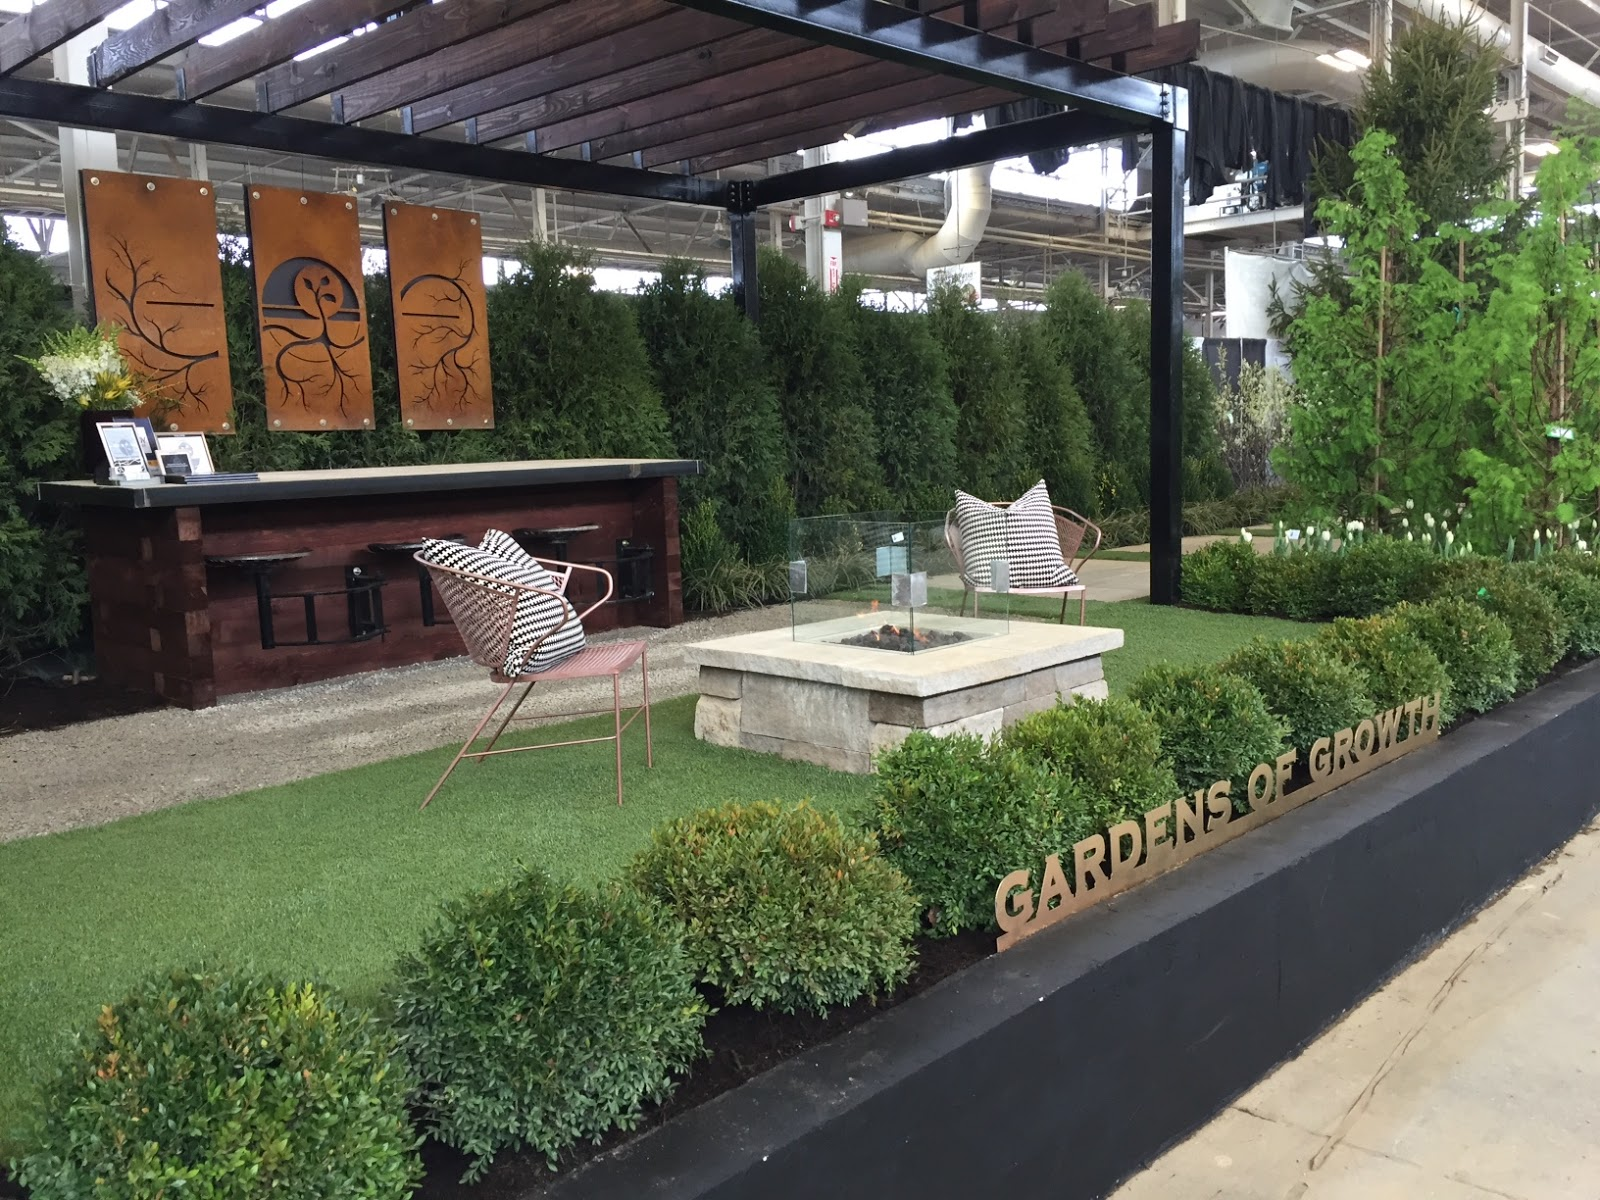 2016 flower and patio show gardens of growth 5